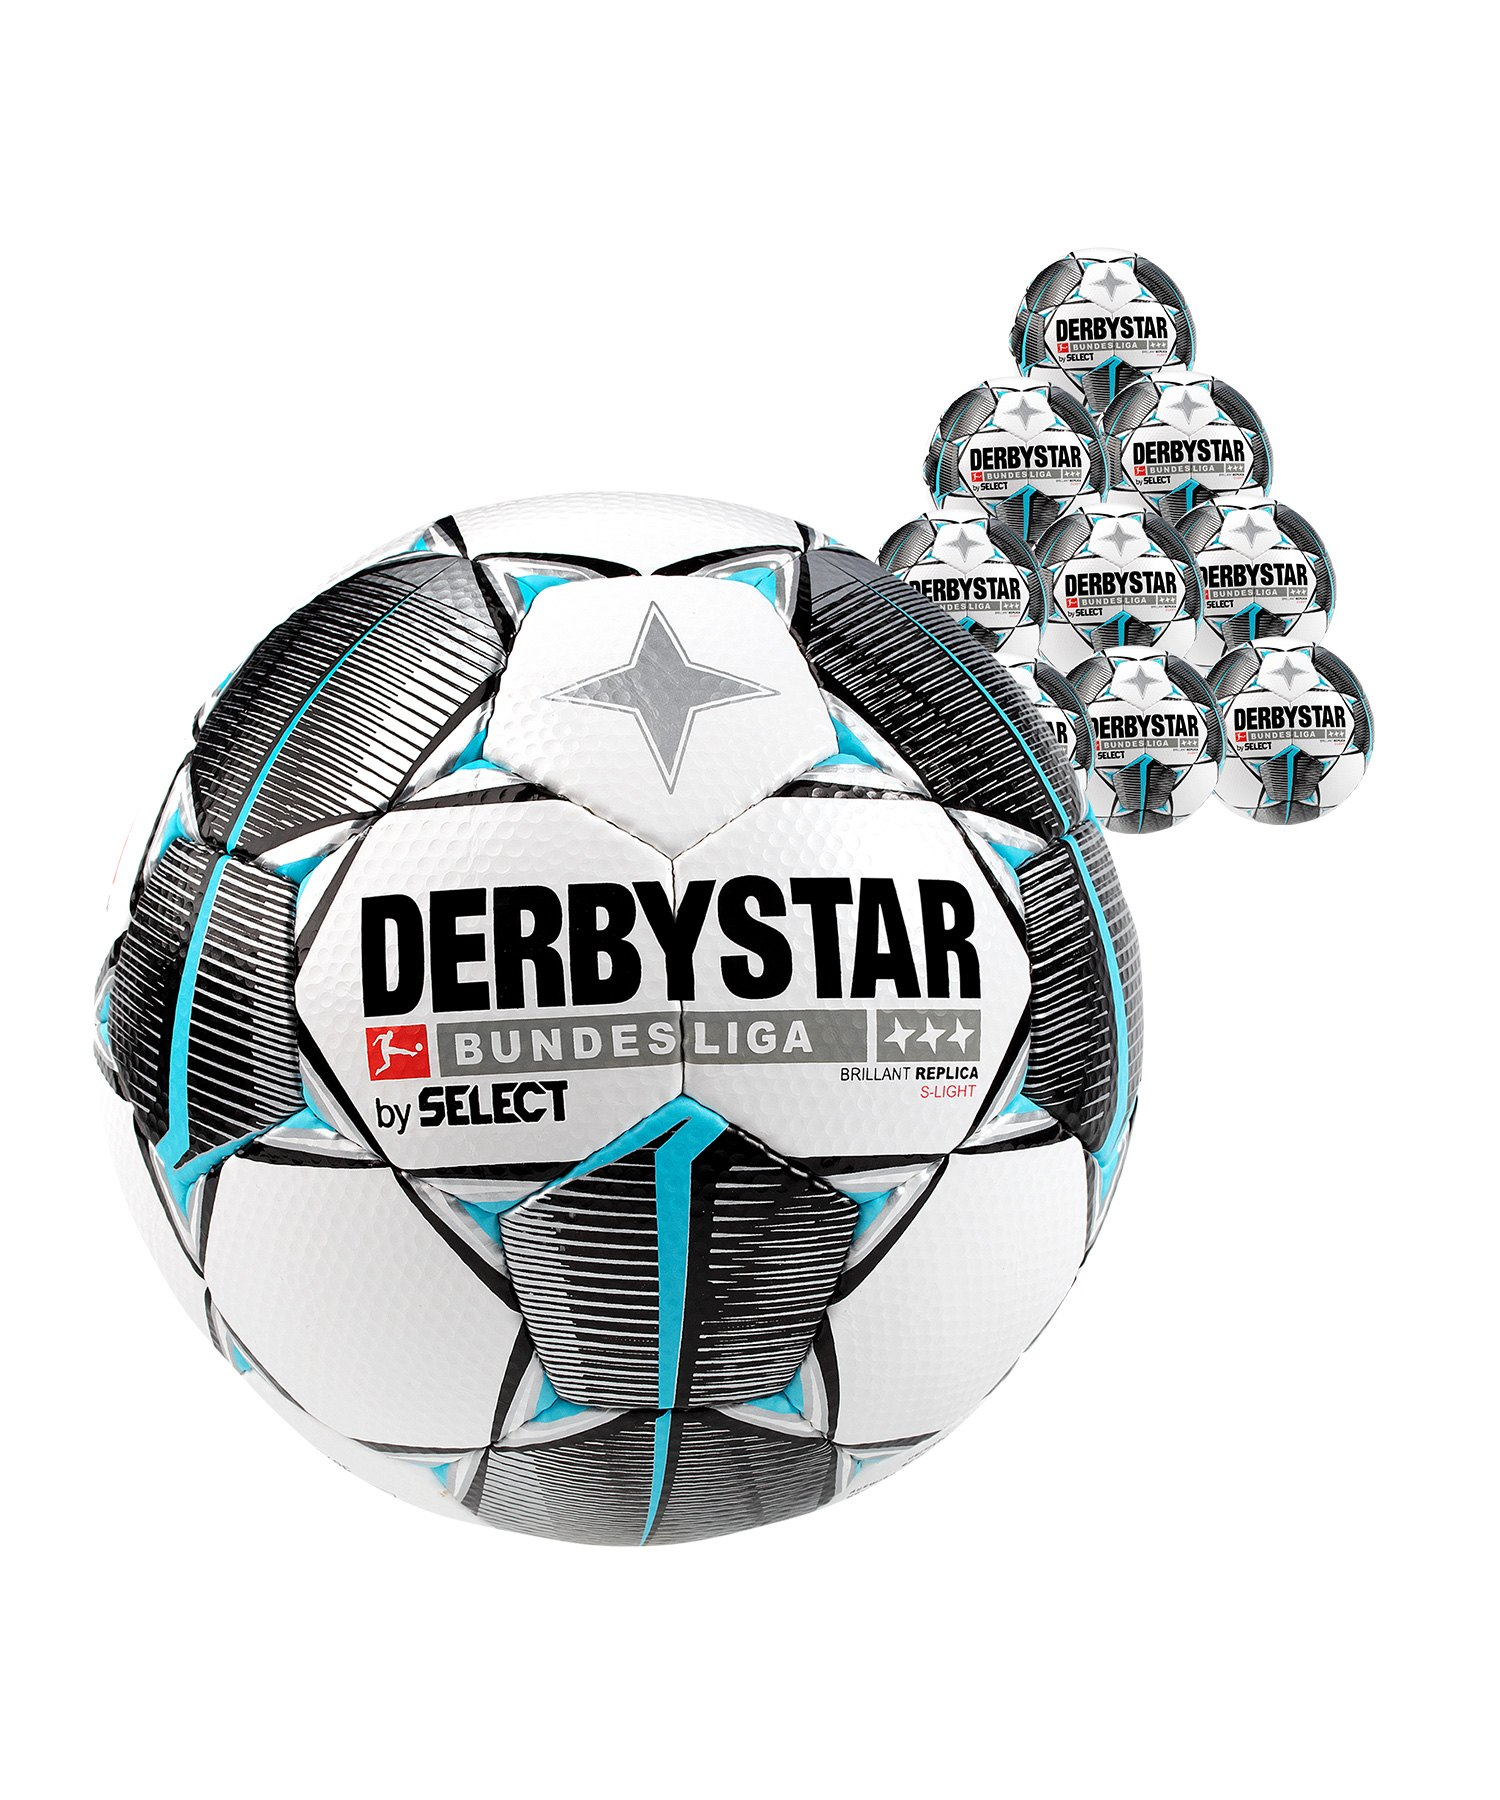 Derbystar Bundesliga Bril Replica S-Light 50x Gr.5 Weiss F019 - weiss